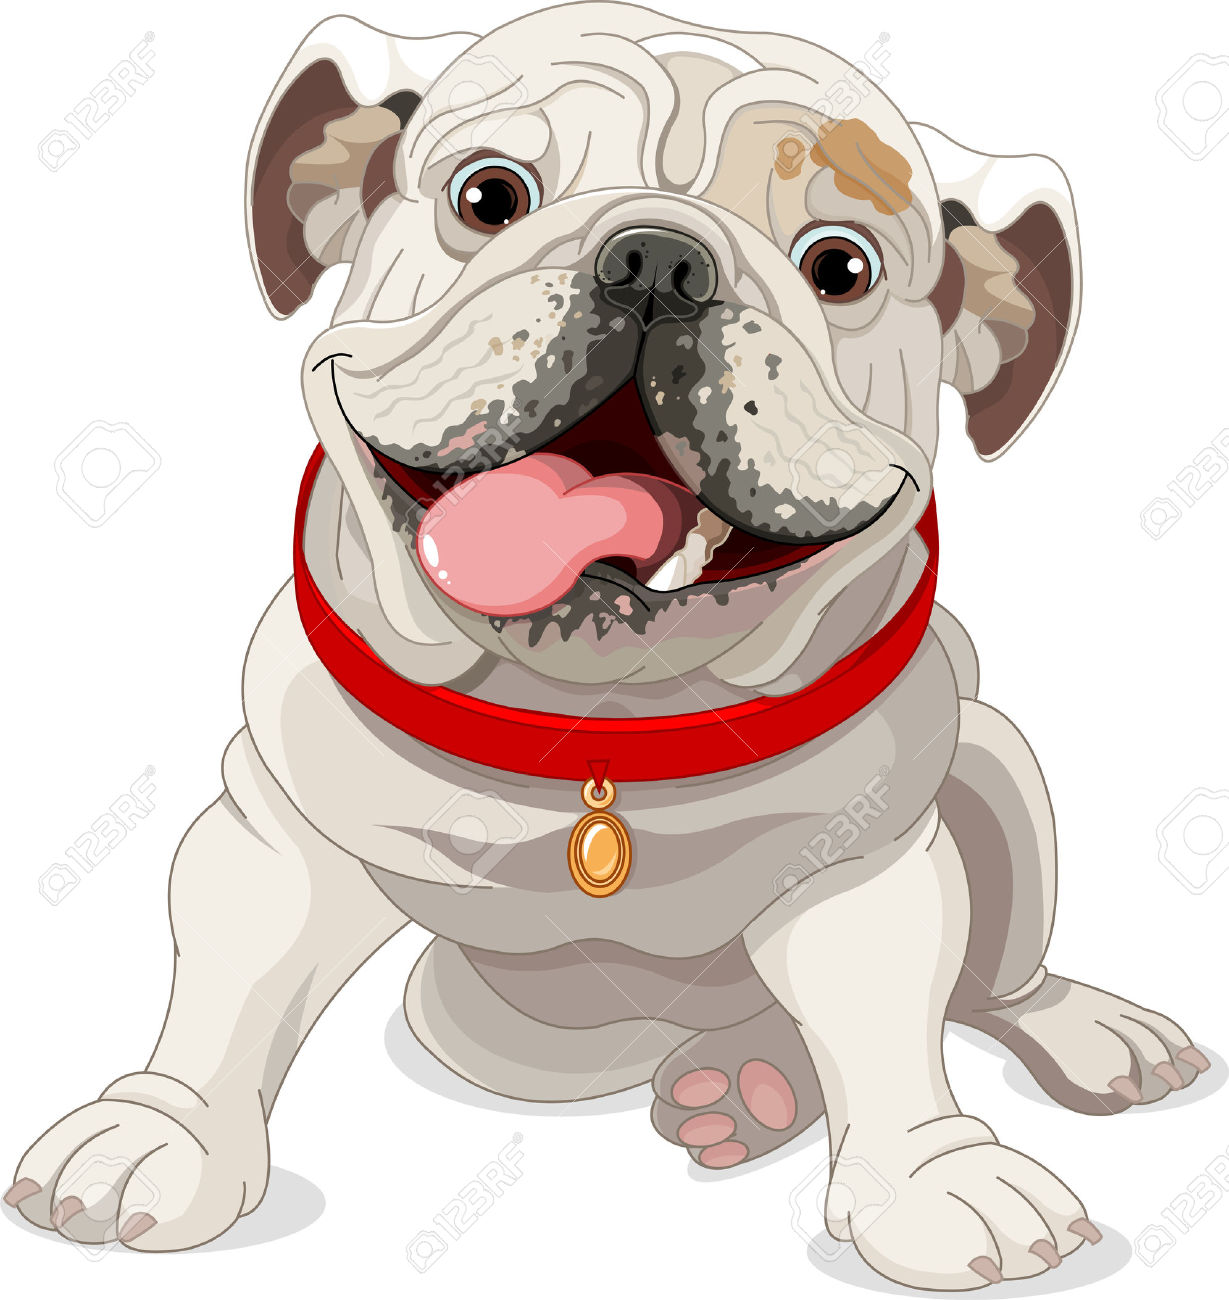 English Bulldog clipart #1, Download drawings